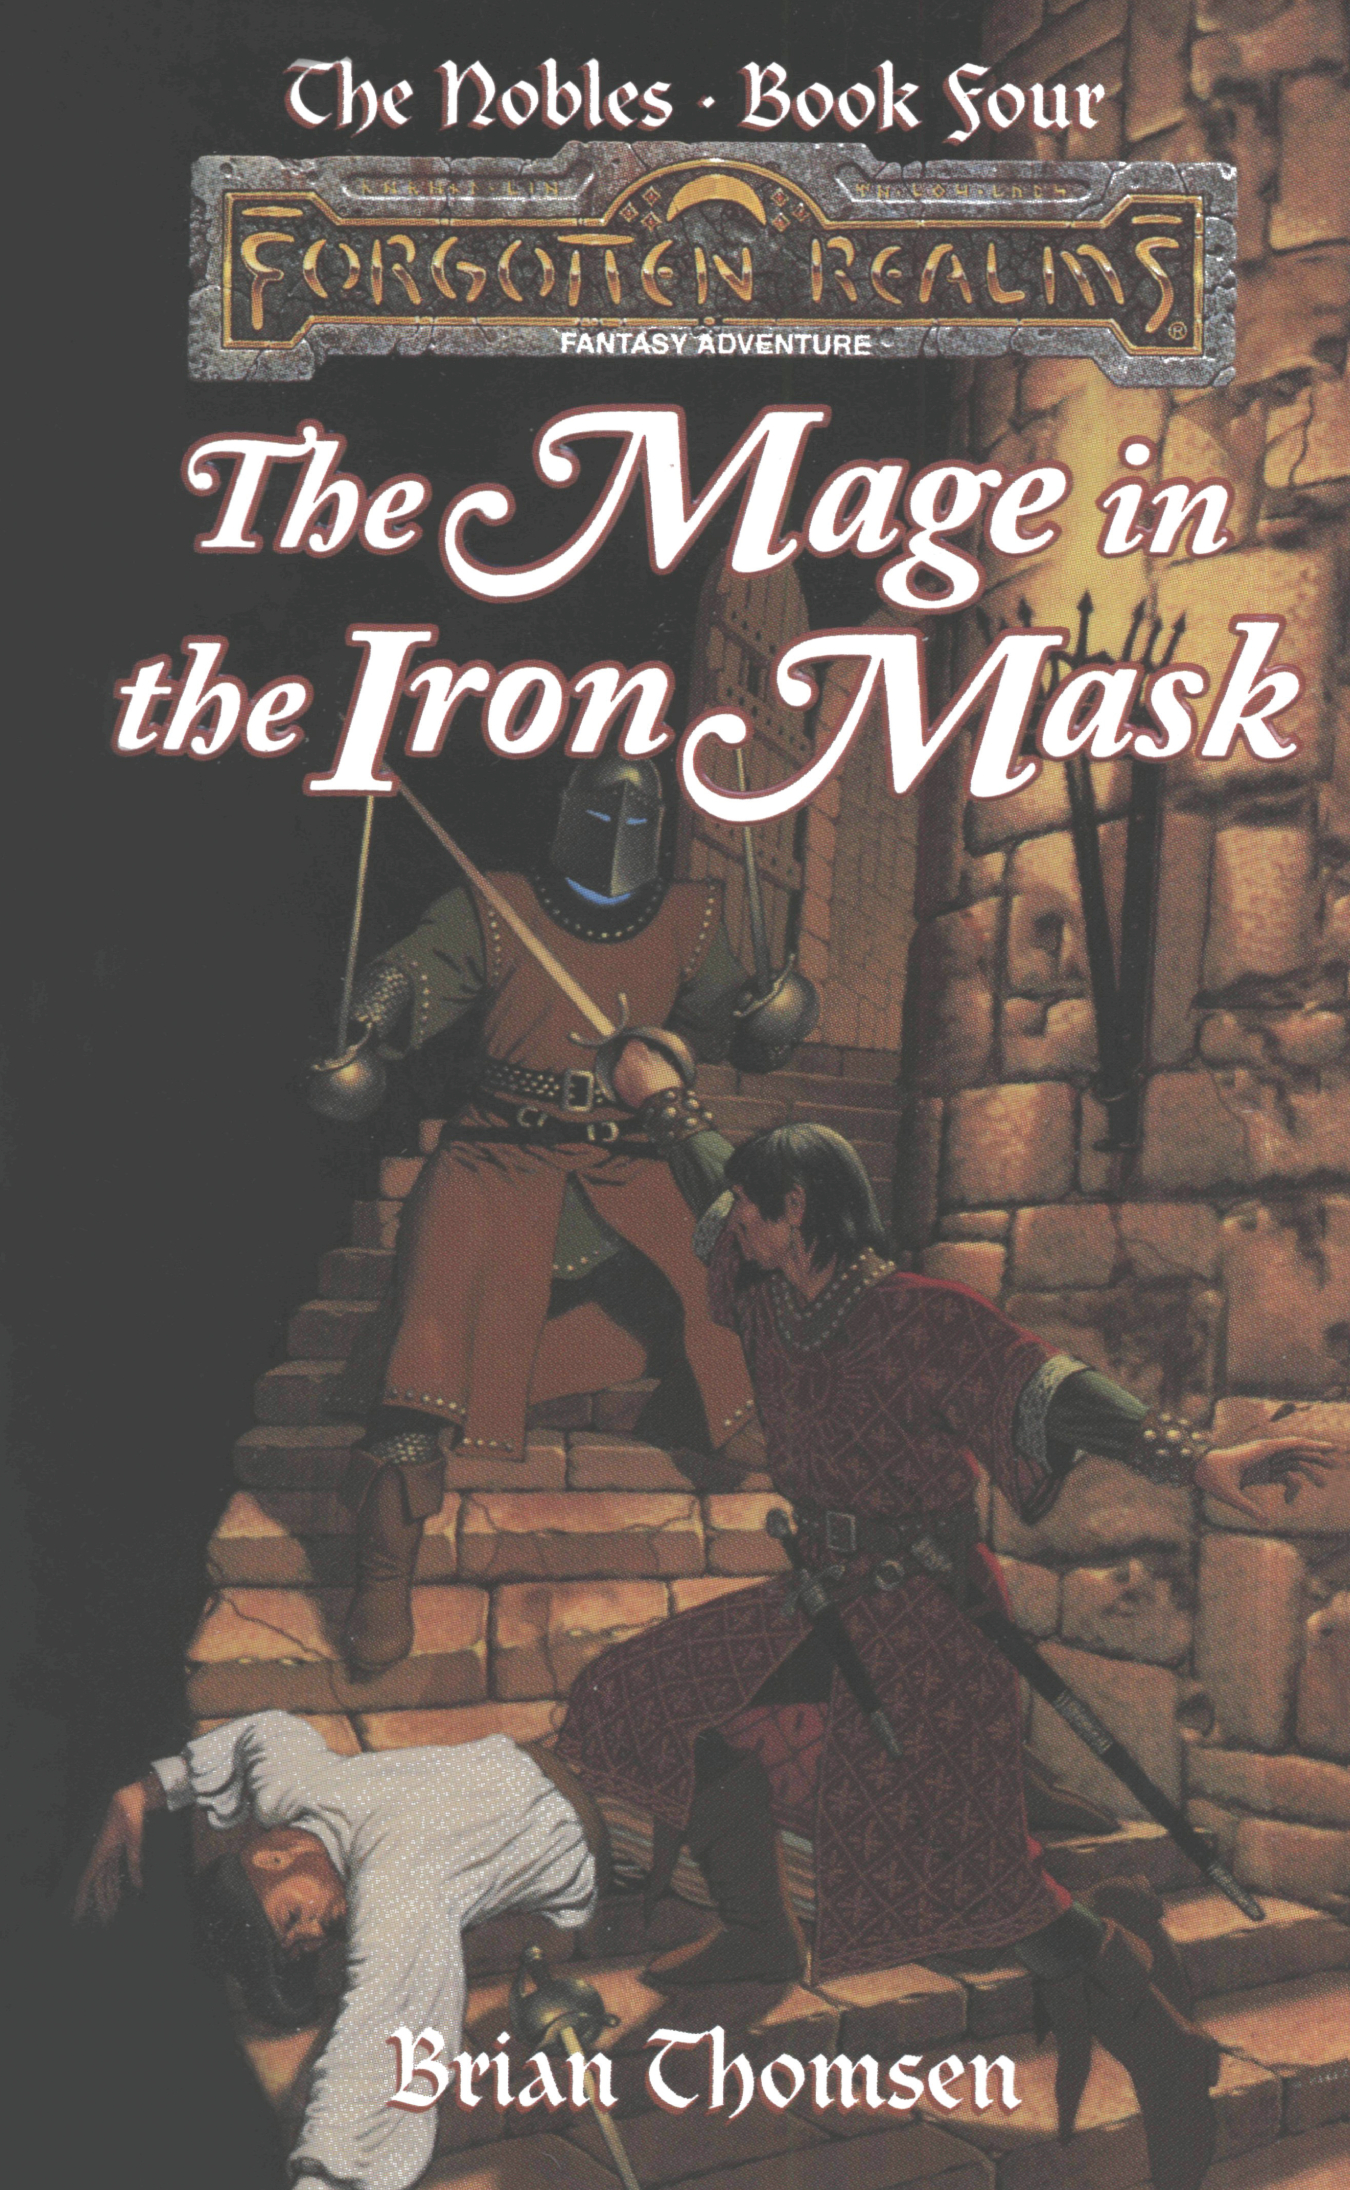 The Mage in the Iron Mask